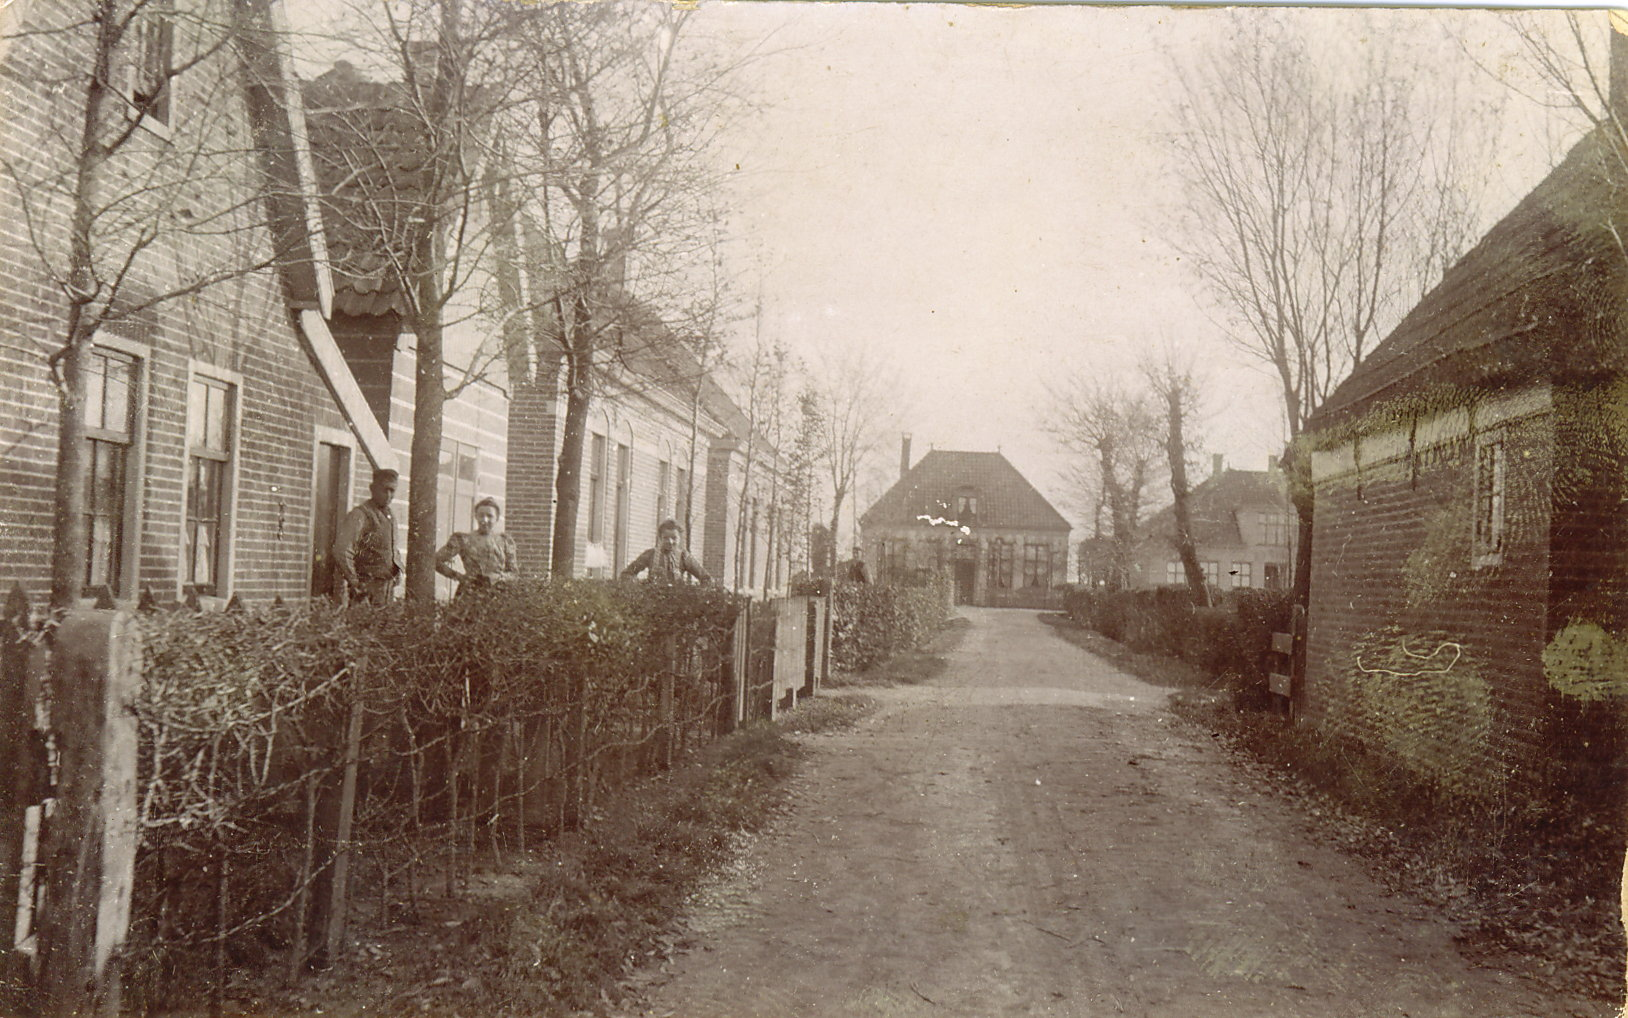 Dilvis rond 1910